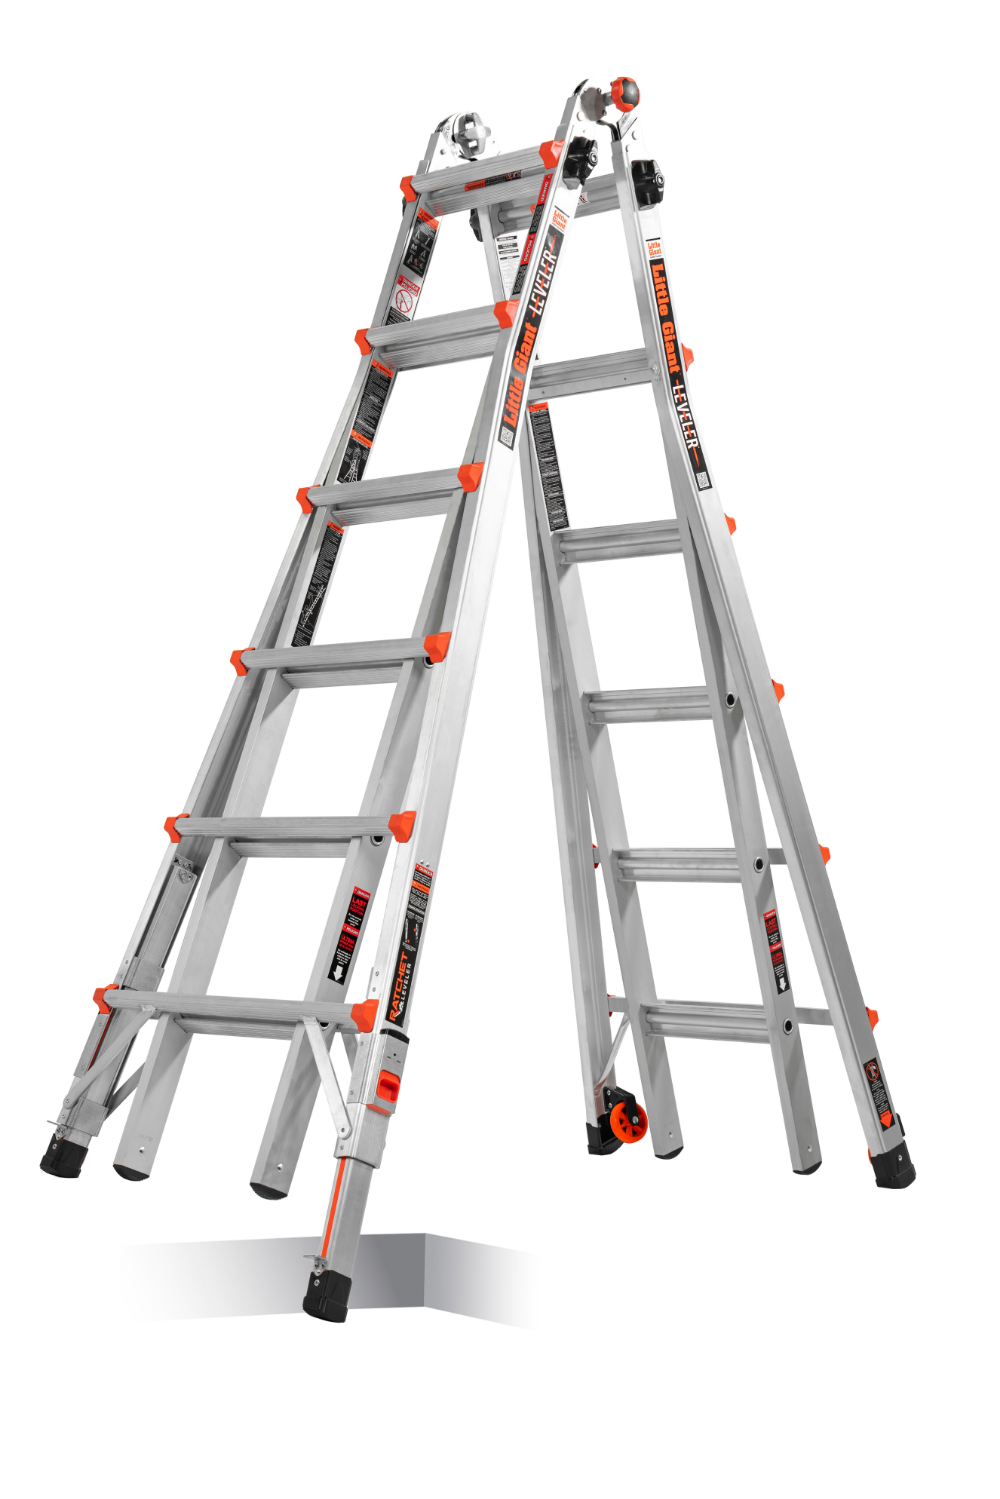 Little Giant Ladders Leveler Aluminum 26 Ft Reach Type 1a 300 Lbs Capacity Telescoping Multi Position Ladder Lowes Com Multi Purpose Ladder Ladder Ladder Leveler